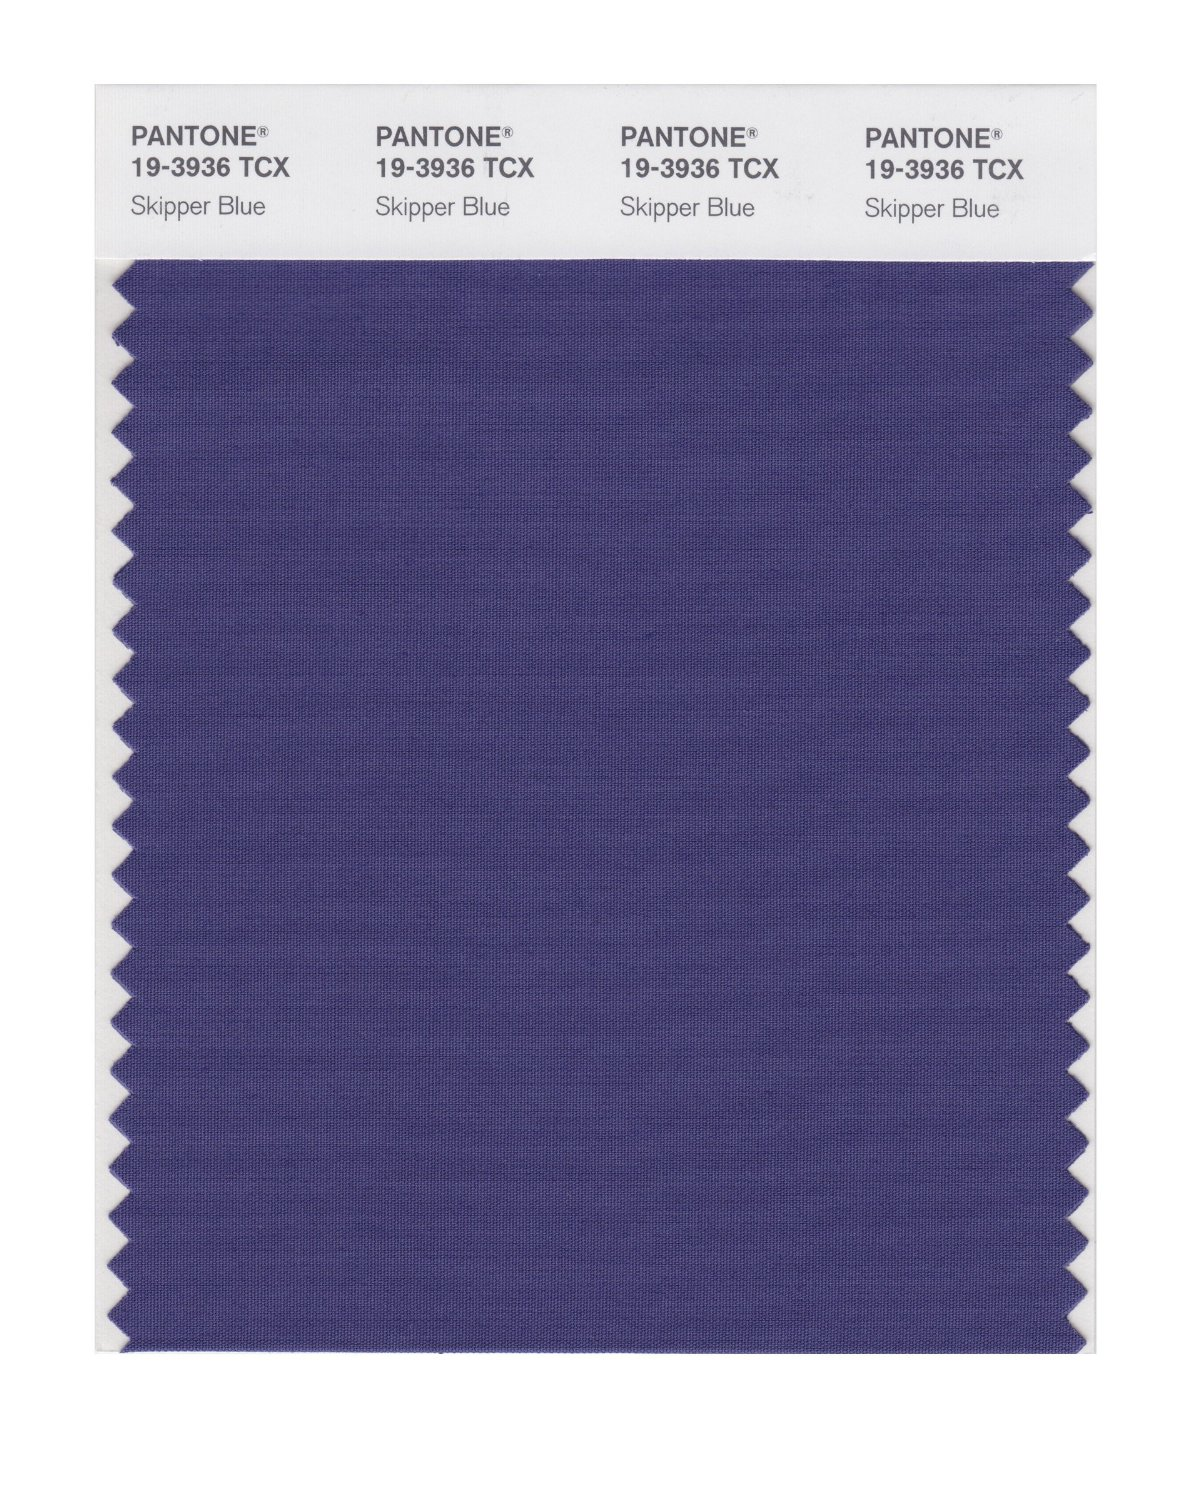 Pantone Smart Swatch 19-3936 Skipper Blue